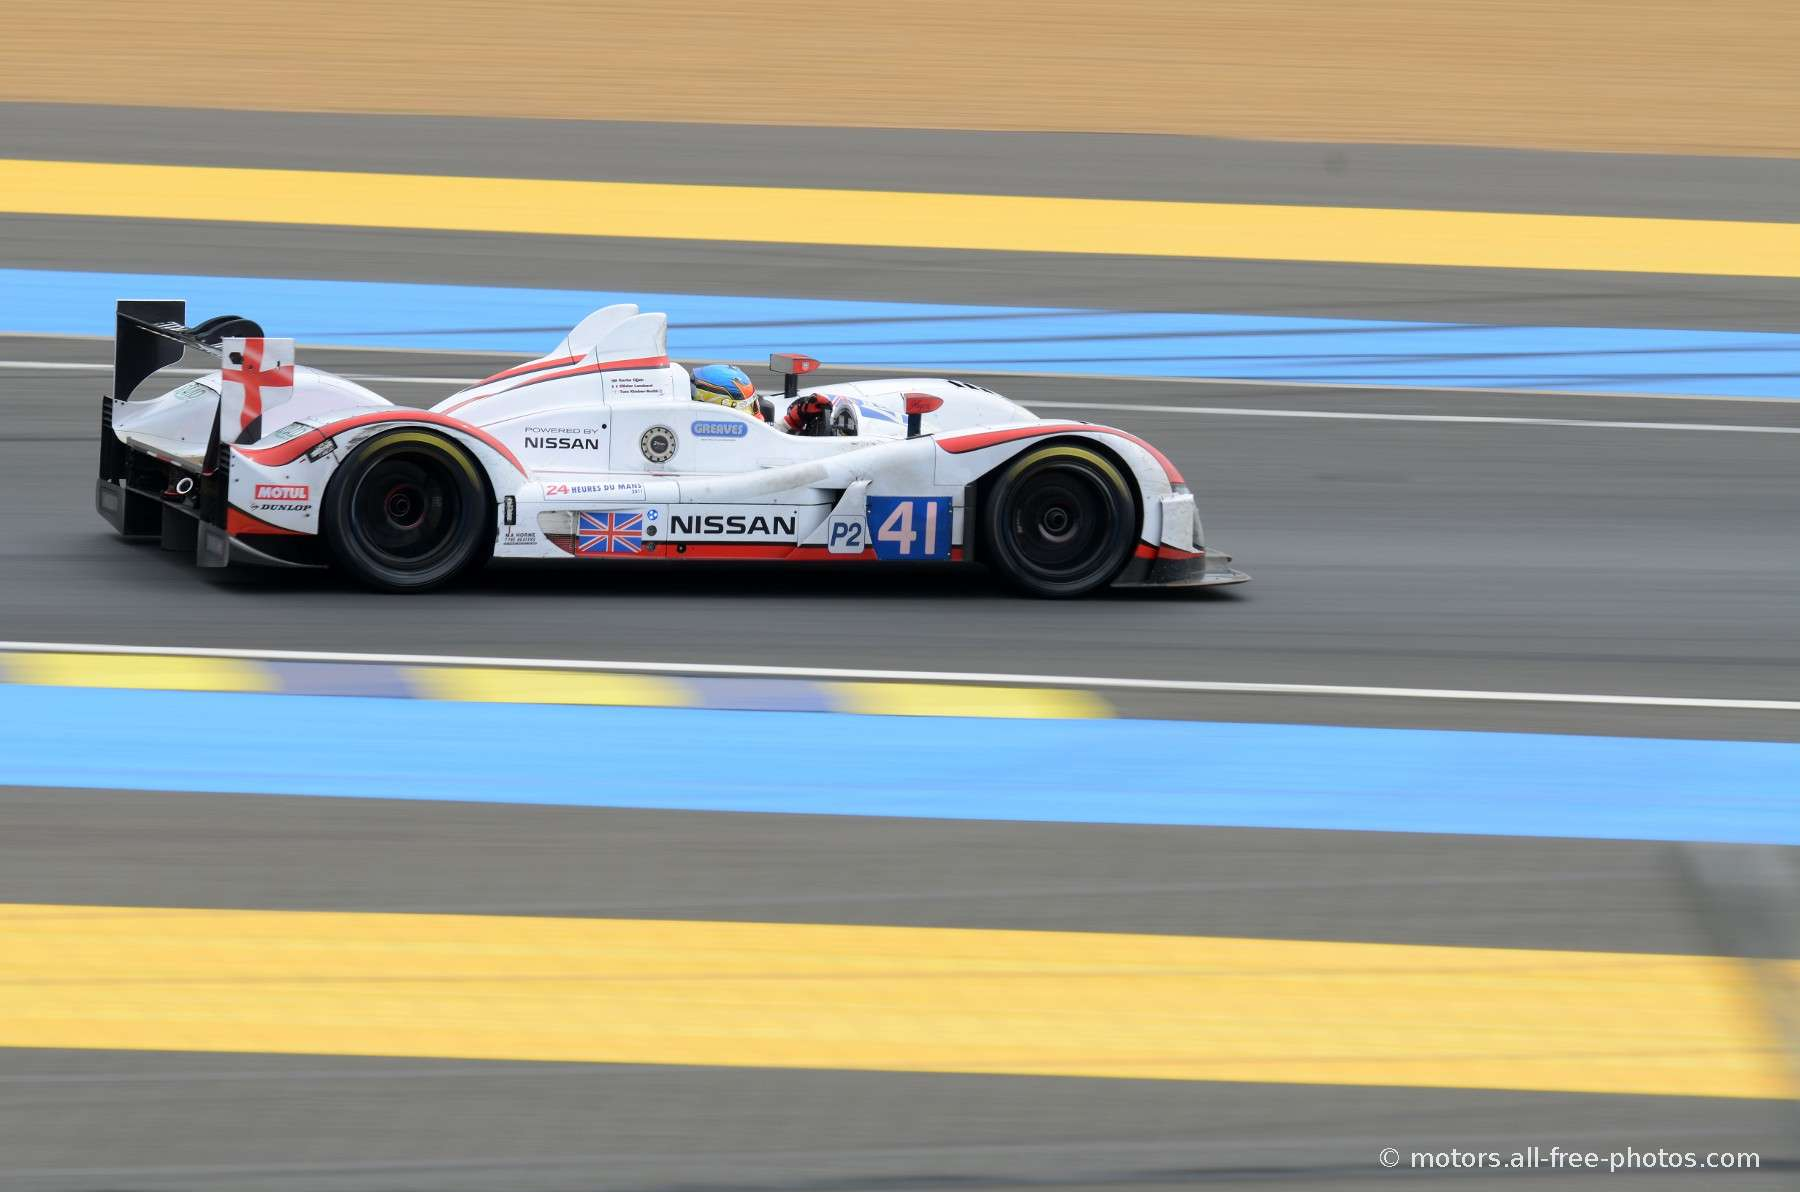 Zytek Z11SN-Nissan - Team Greaves Motorsport